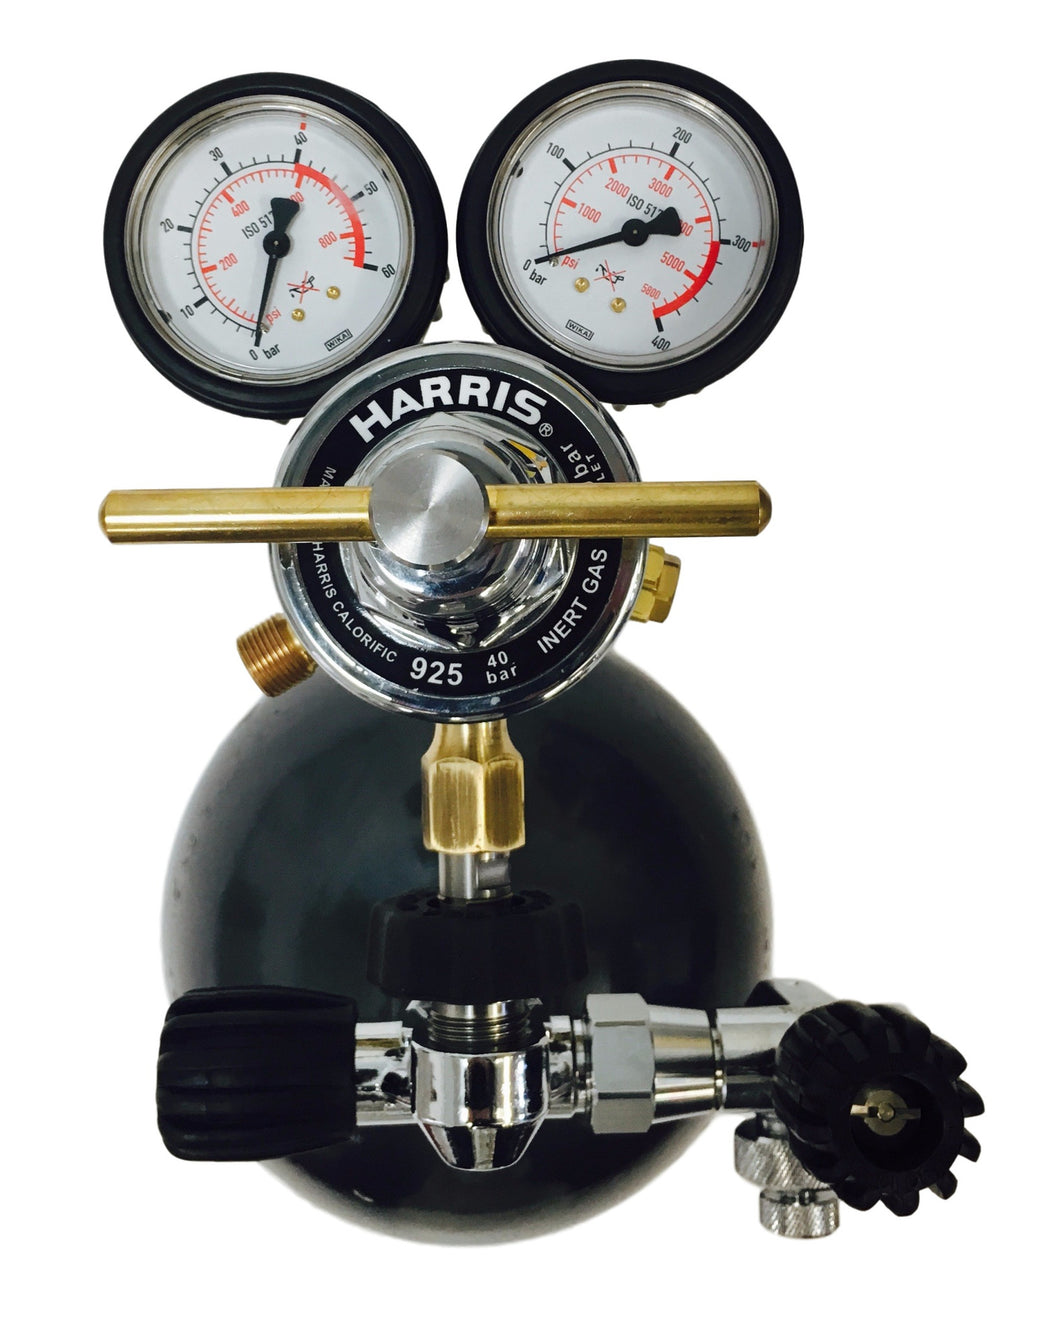 925 Airjack Regulator